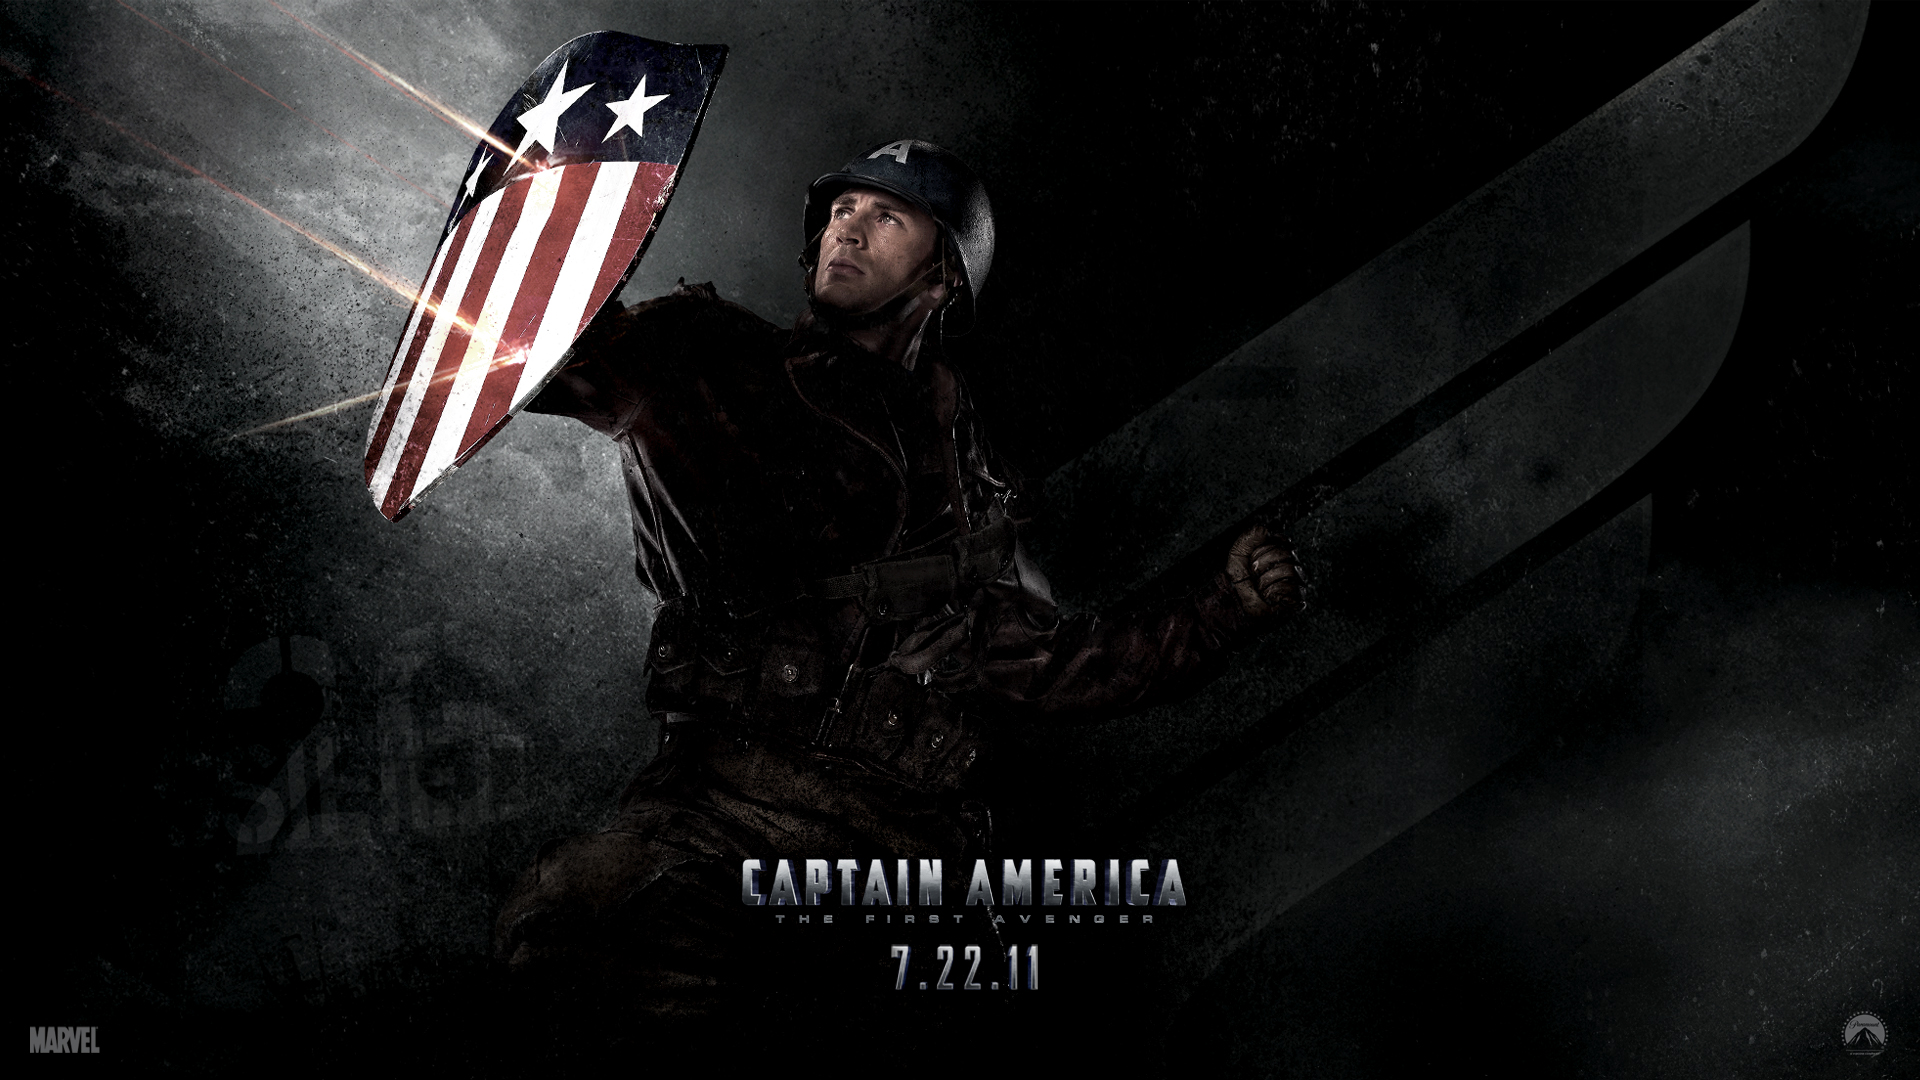 Chris Evans in Captain America 2011 Wallpapers HD Wallpapers 1920x1080